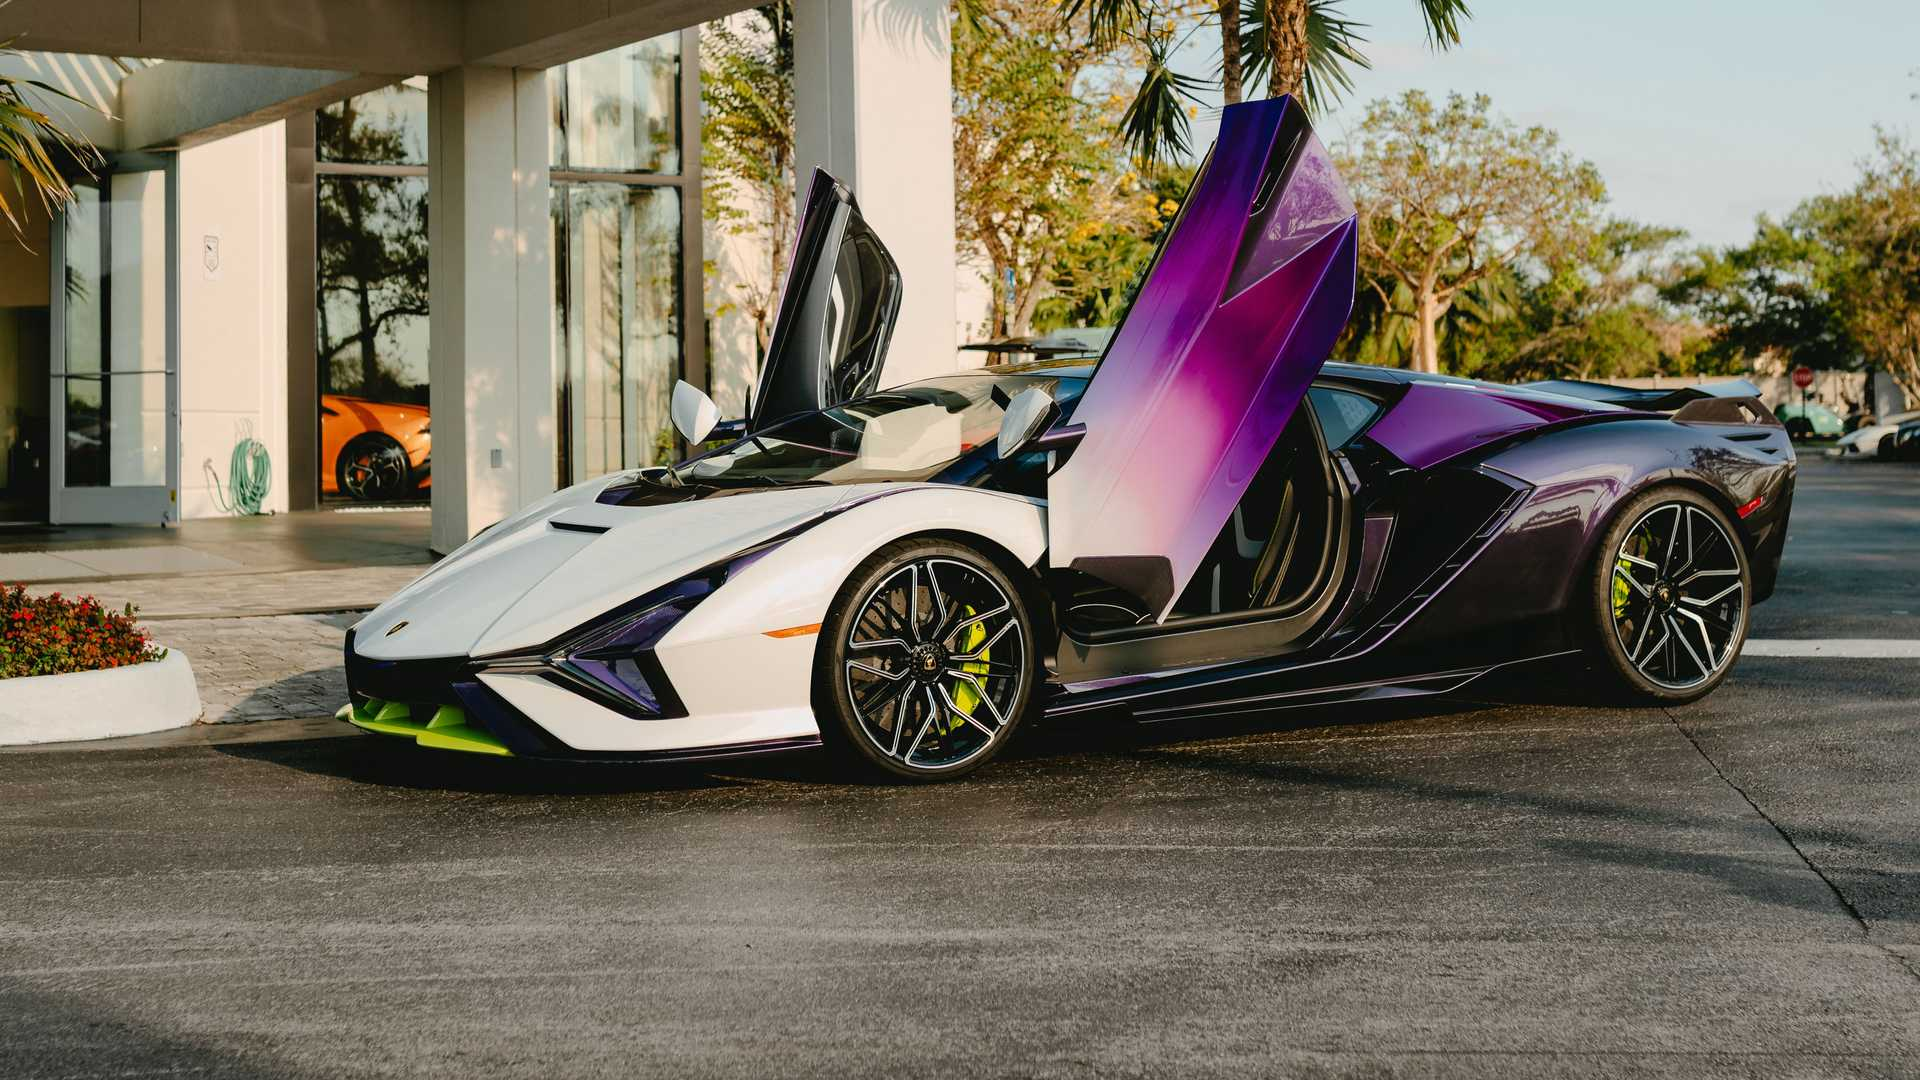 Lamborghini's resplendent Sian hypercar is considered among the most impressive automotive designs of today. Limited to 63 coupes worldwide and just 3 units for the UK, this example from London could be a one-in-a-lifetime sight for most of us.